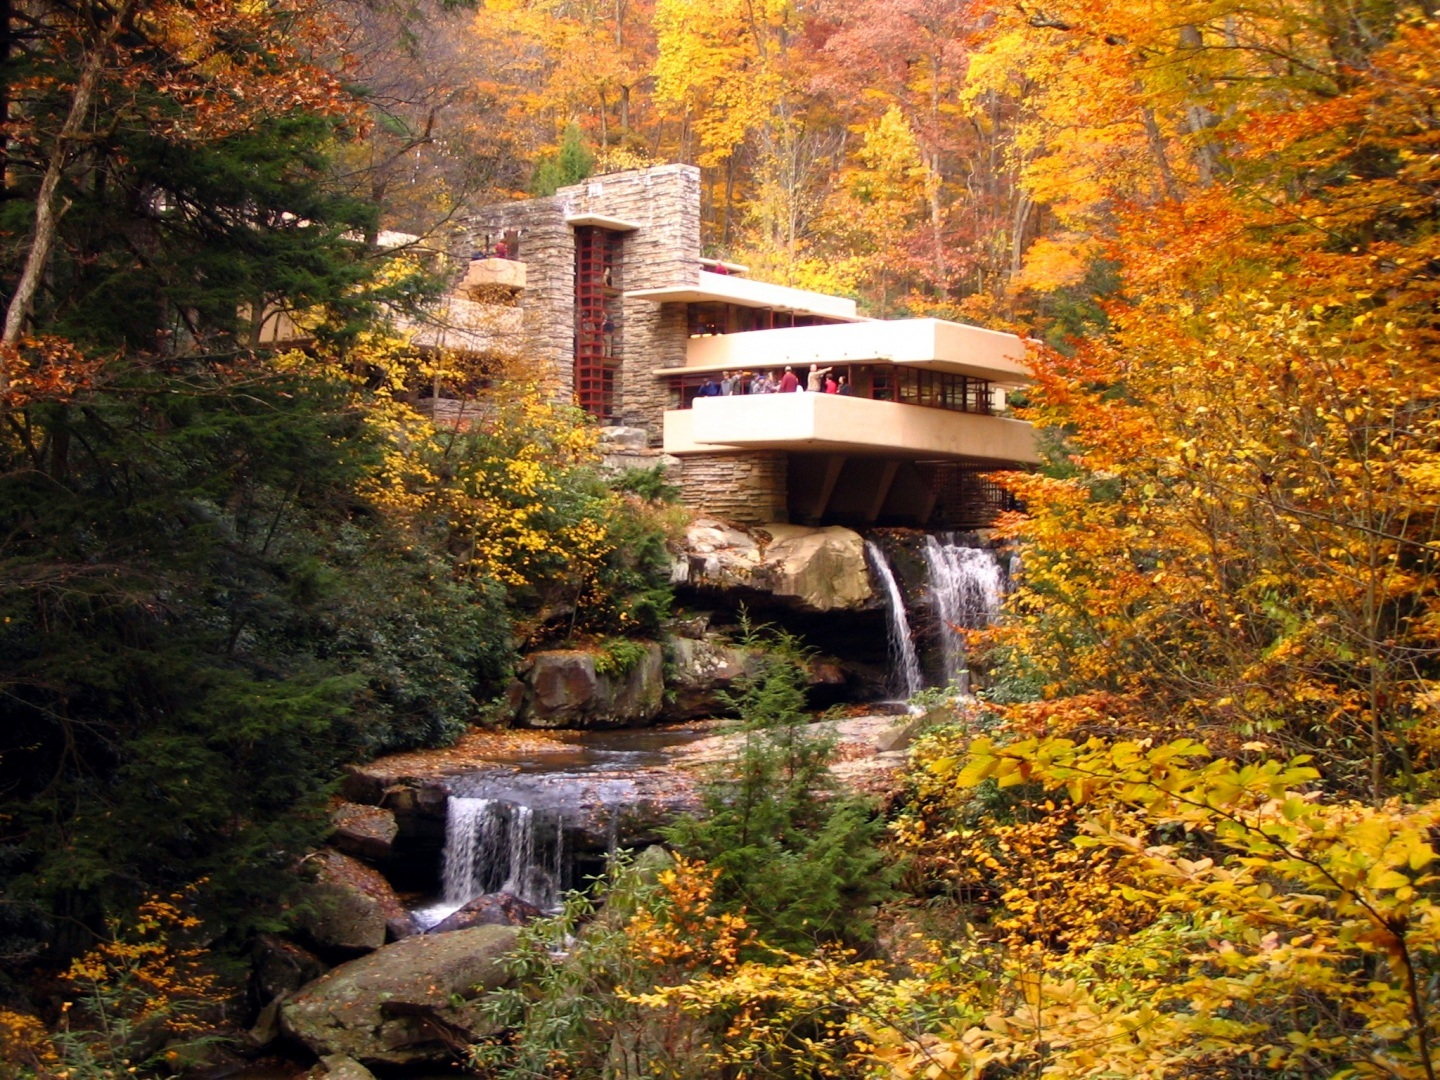 Falling Water Wallpaper Photo Background Wallpapers Images 1440x1080